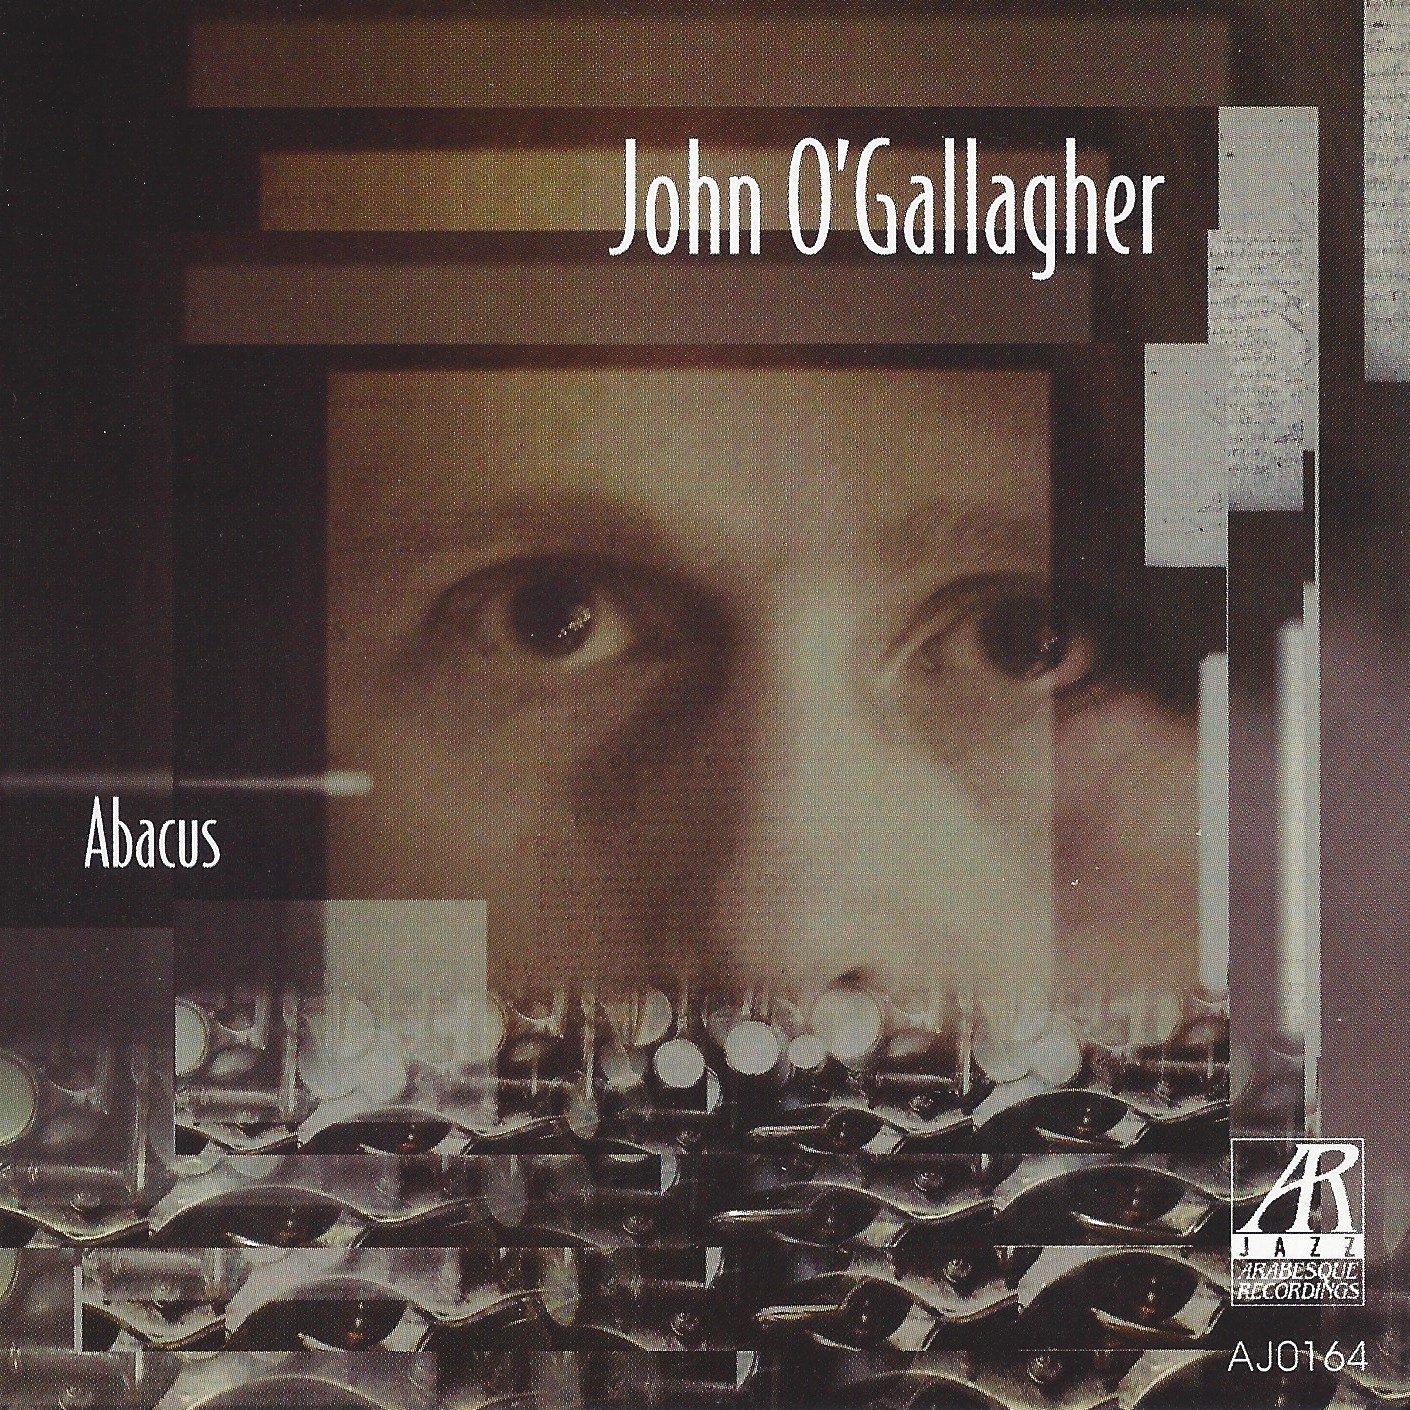 AJ0164  | Abacus |  John O'Gallagher